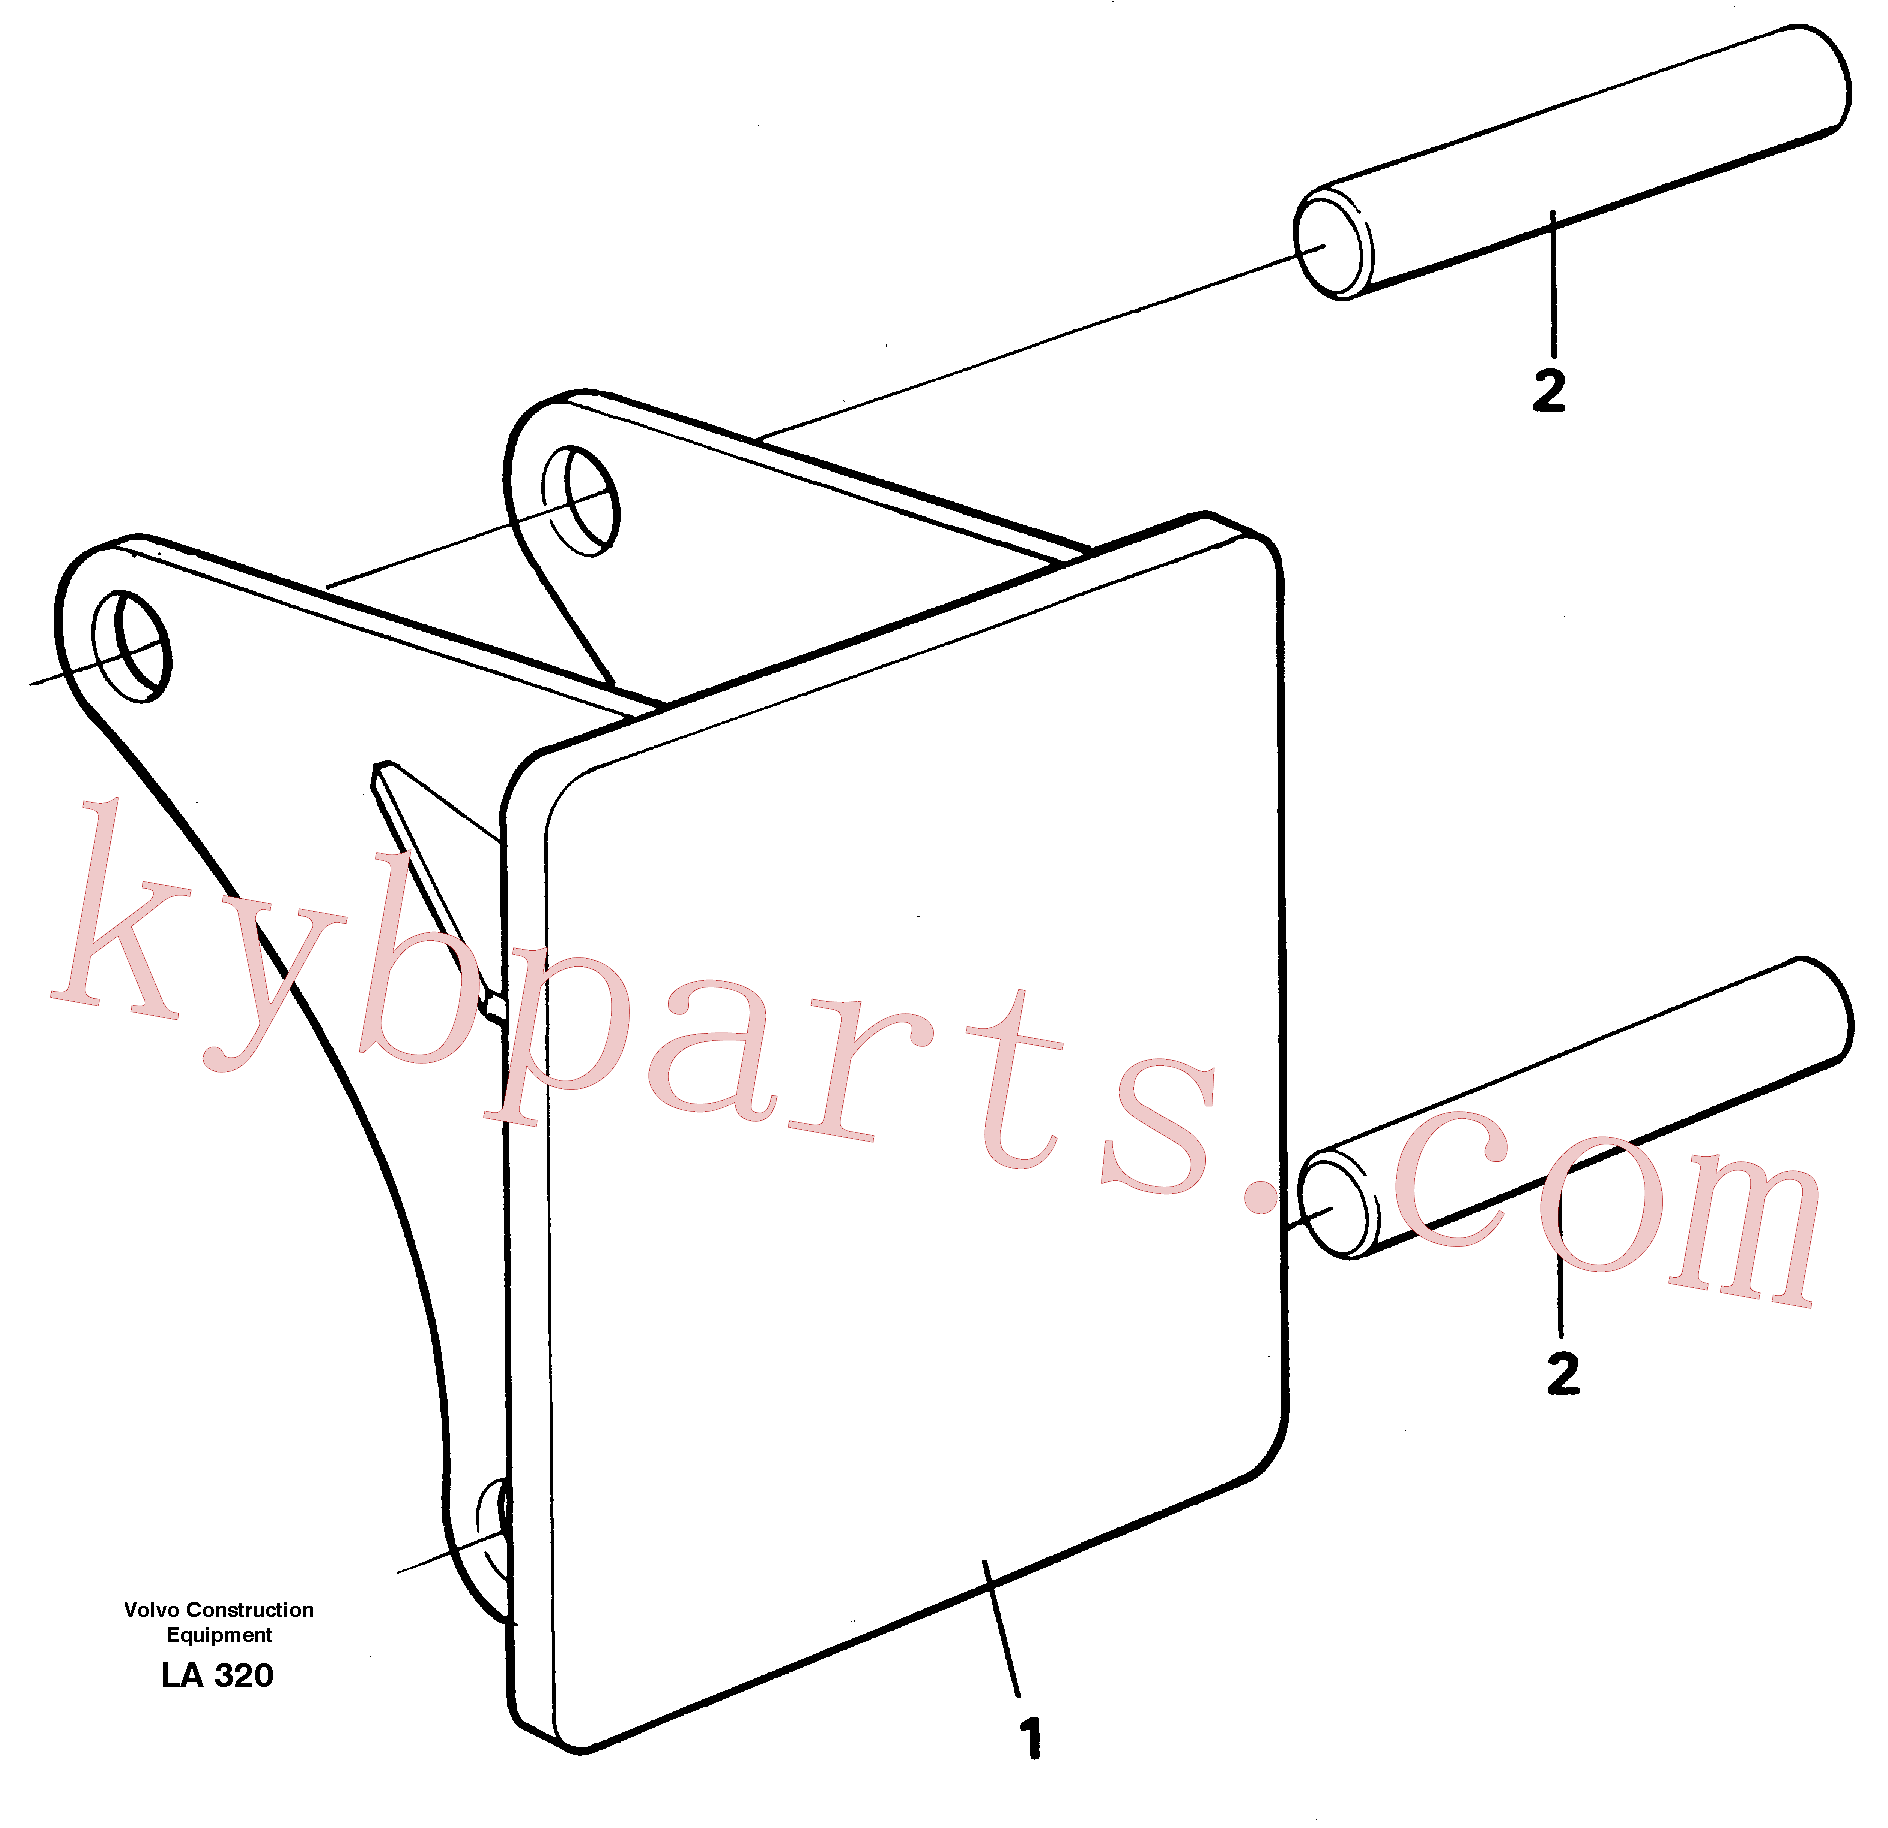 VOE14260983 for Volvo Hammer plate(LA320 assembly)